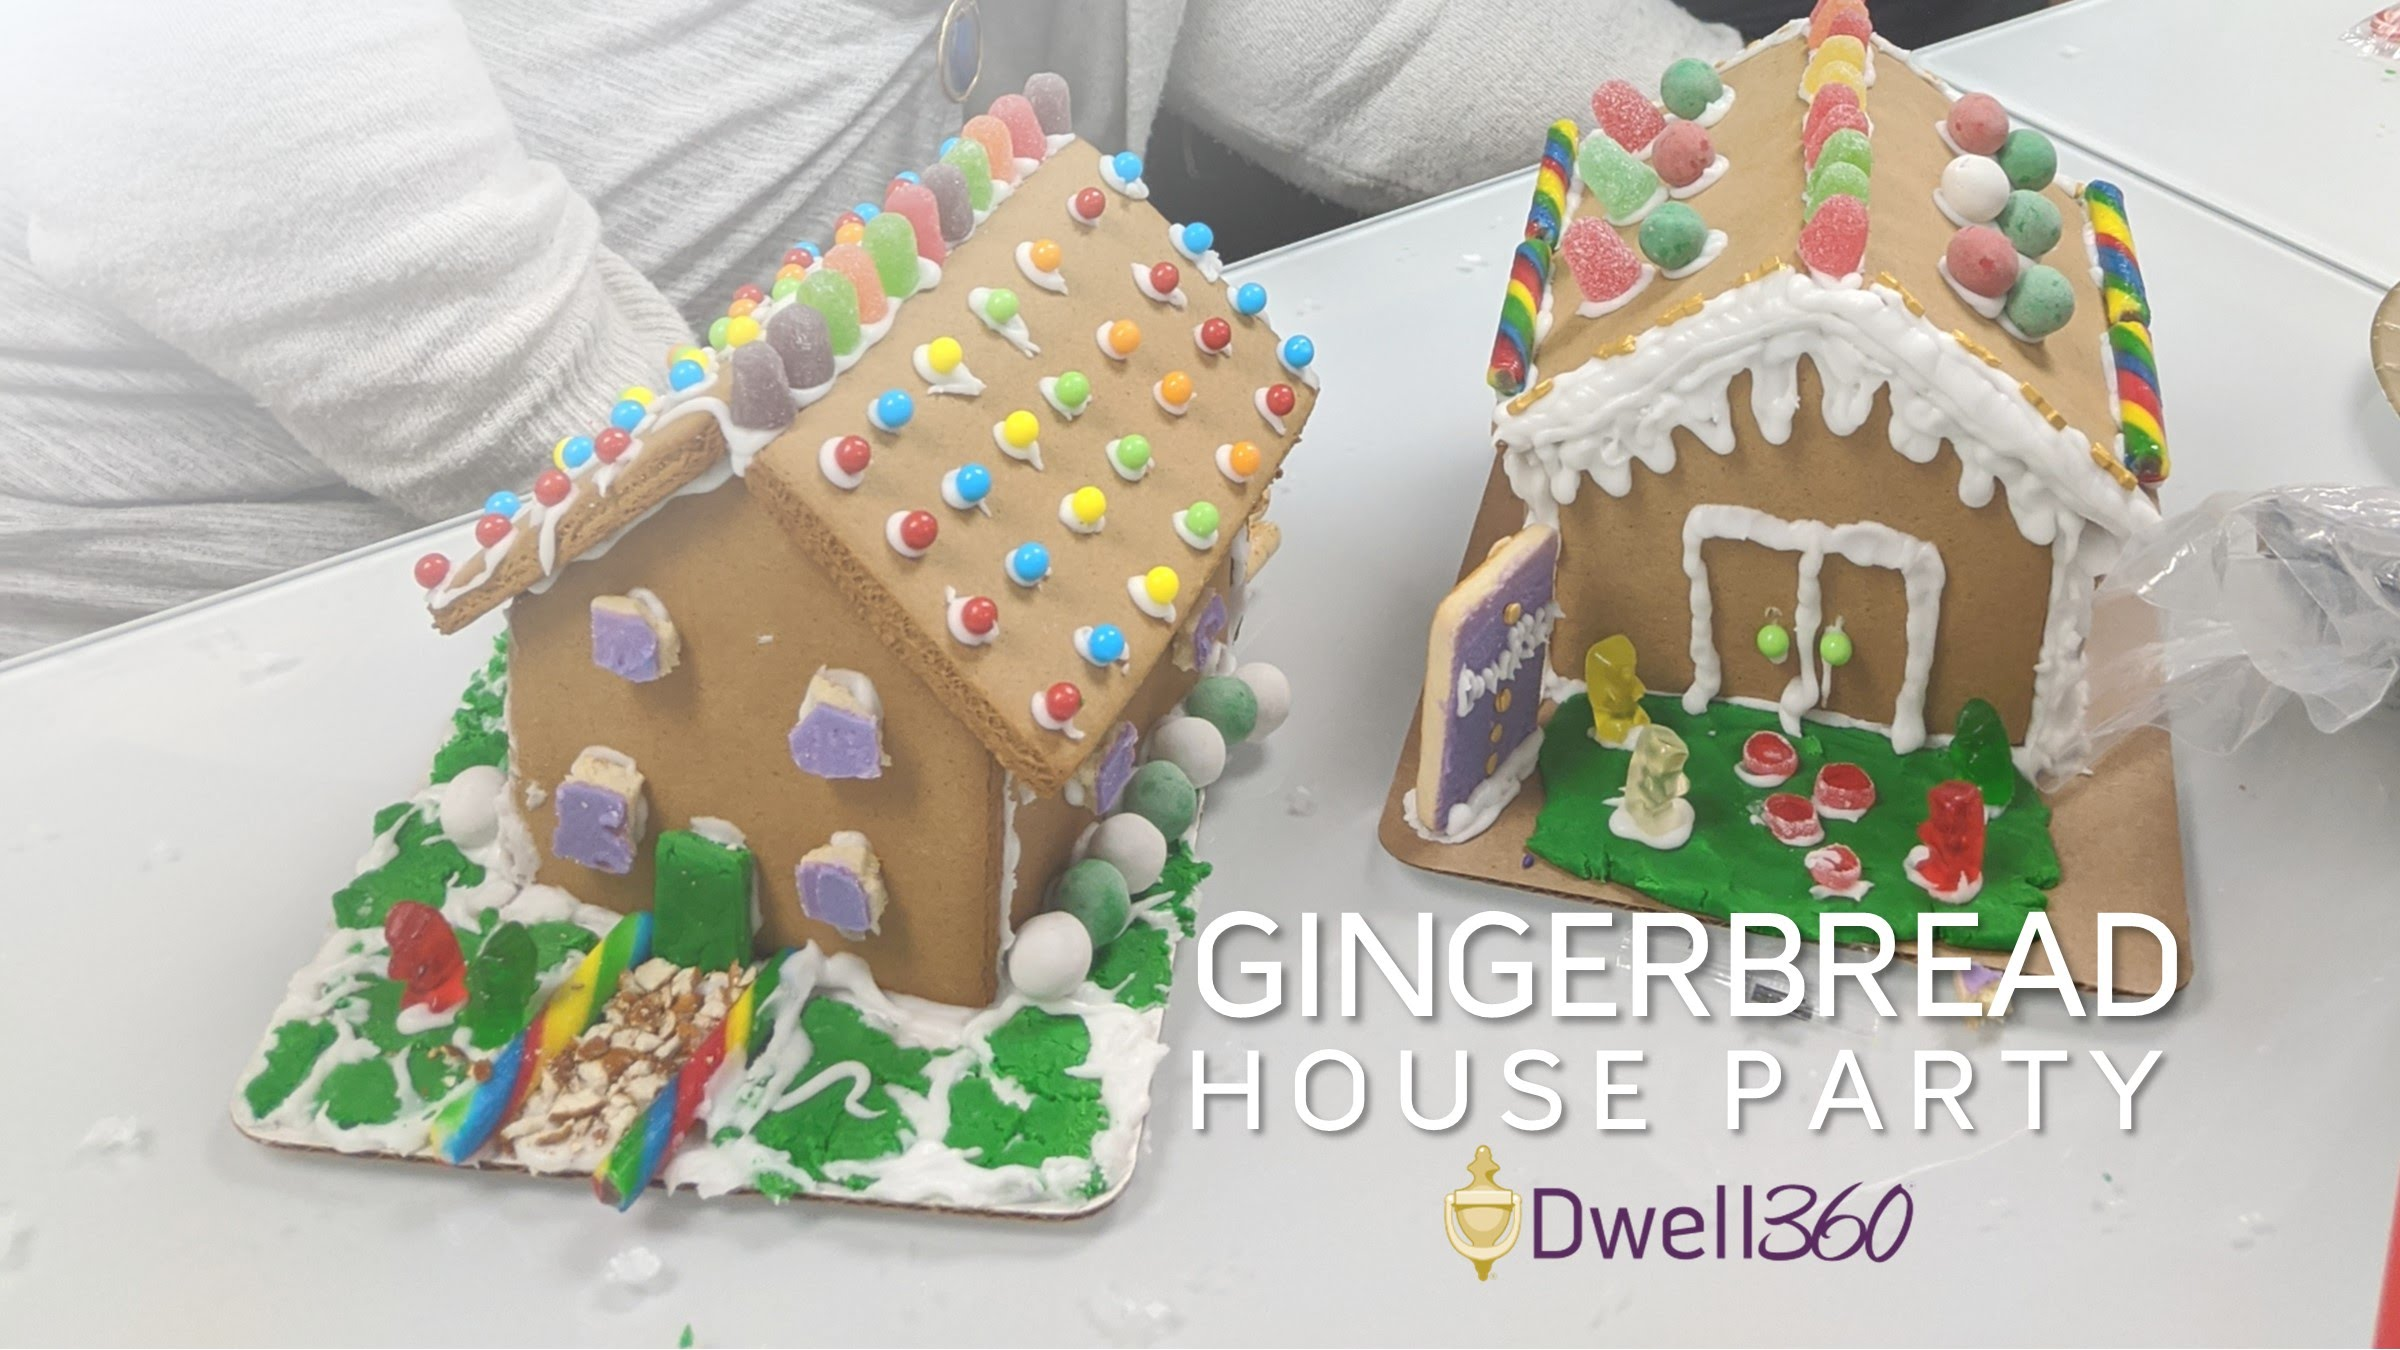 Dwell360 Gingerbread House Party!